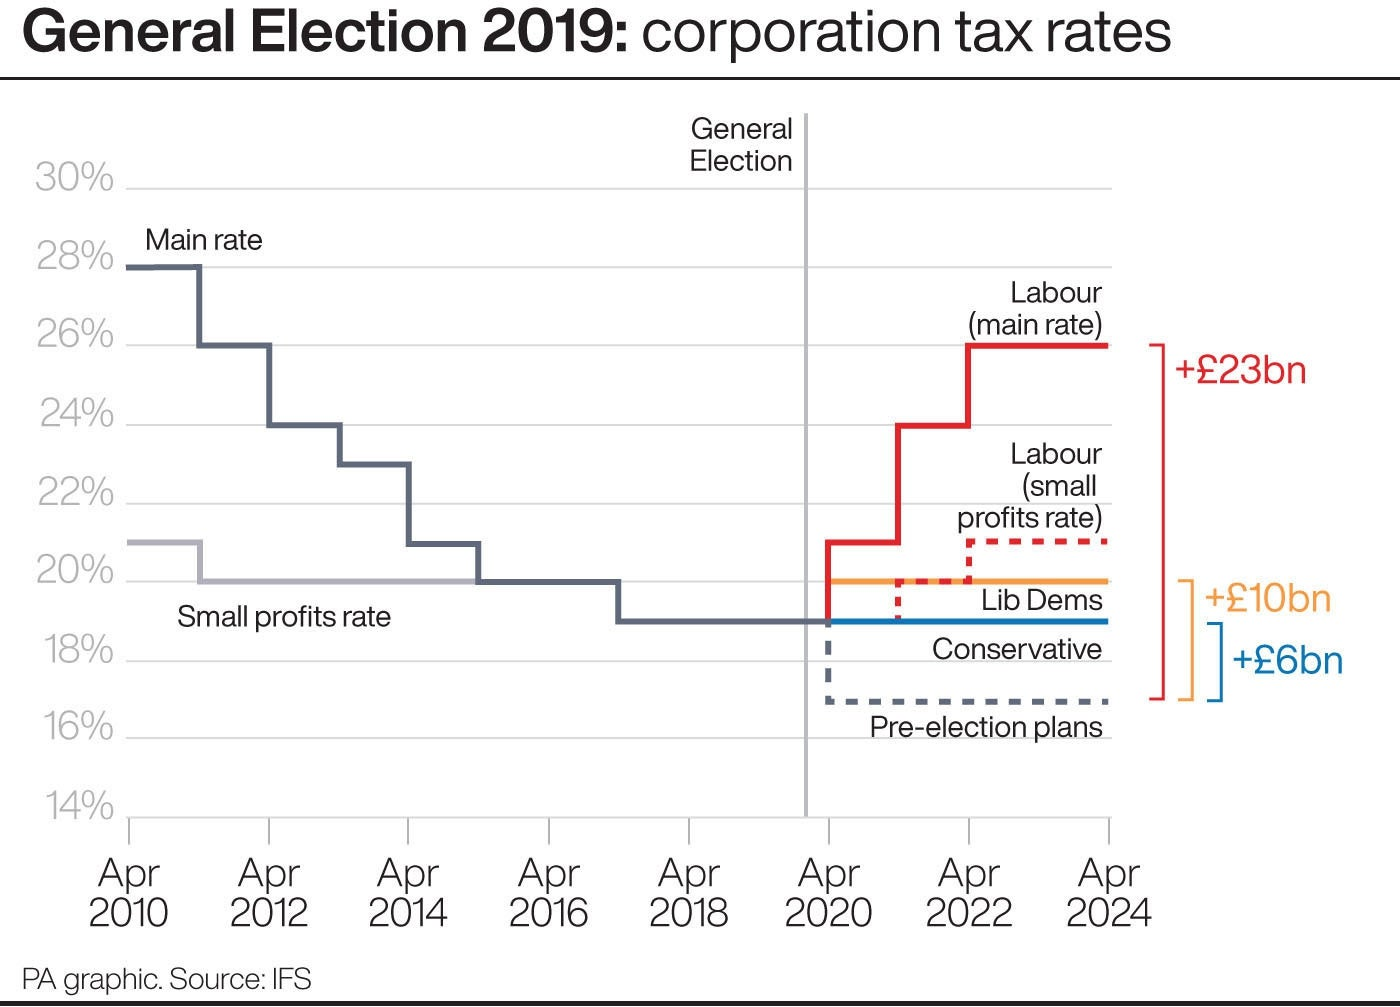 Corporation tax rates